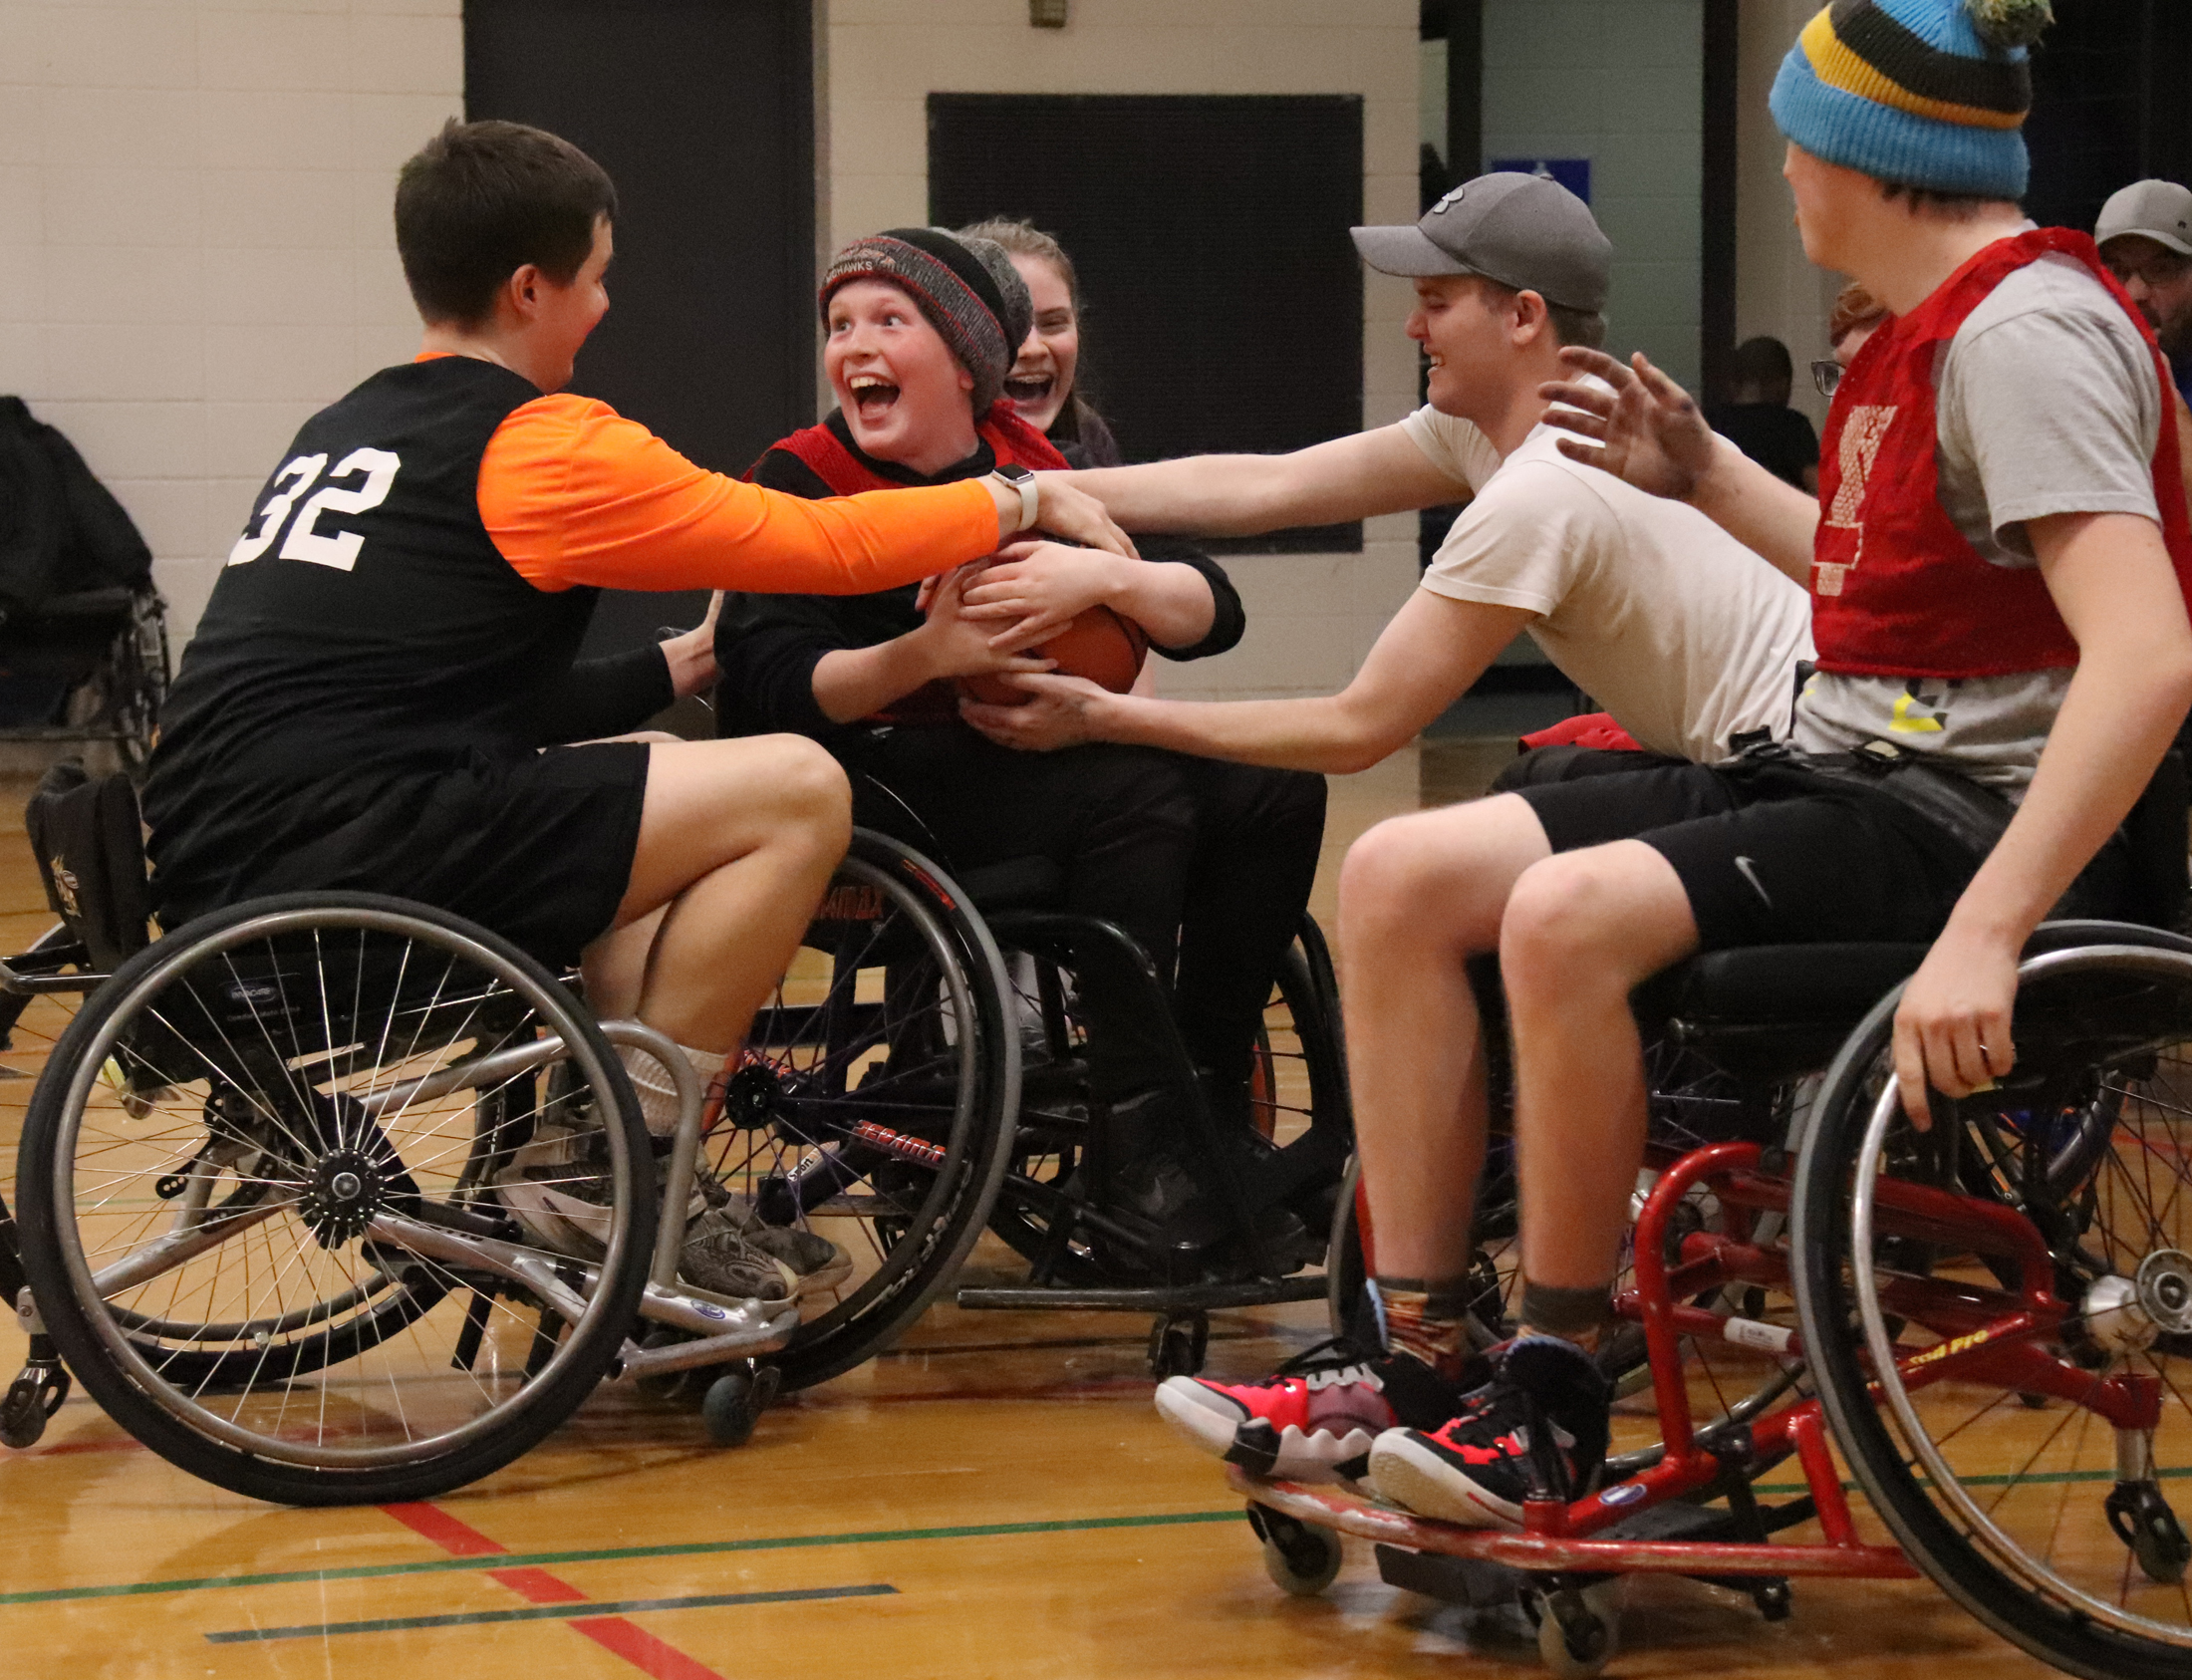 Vertical leap not required to roll with with wheelchair basketball players